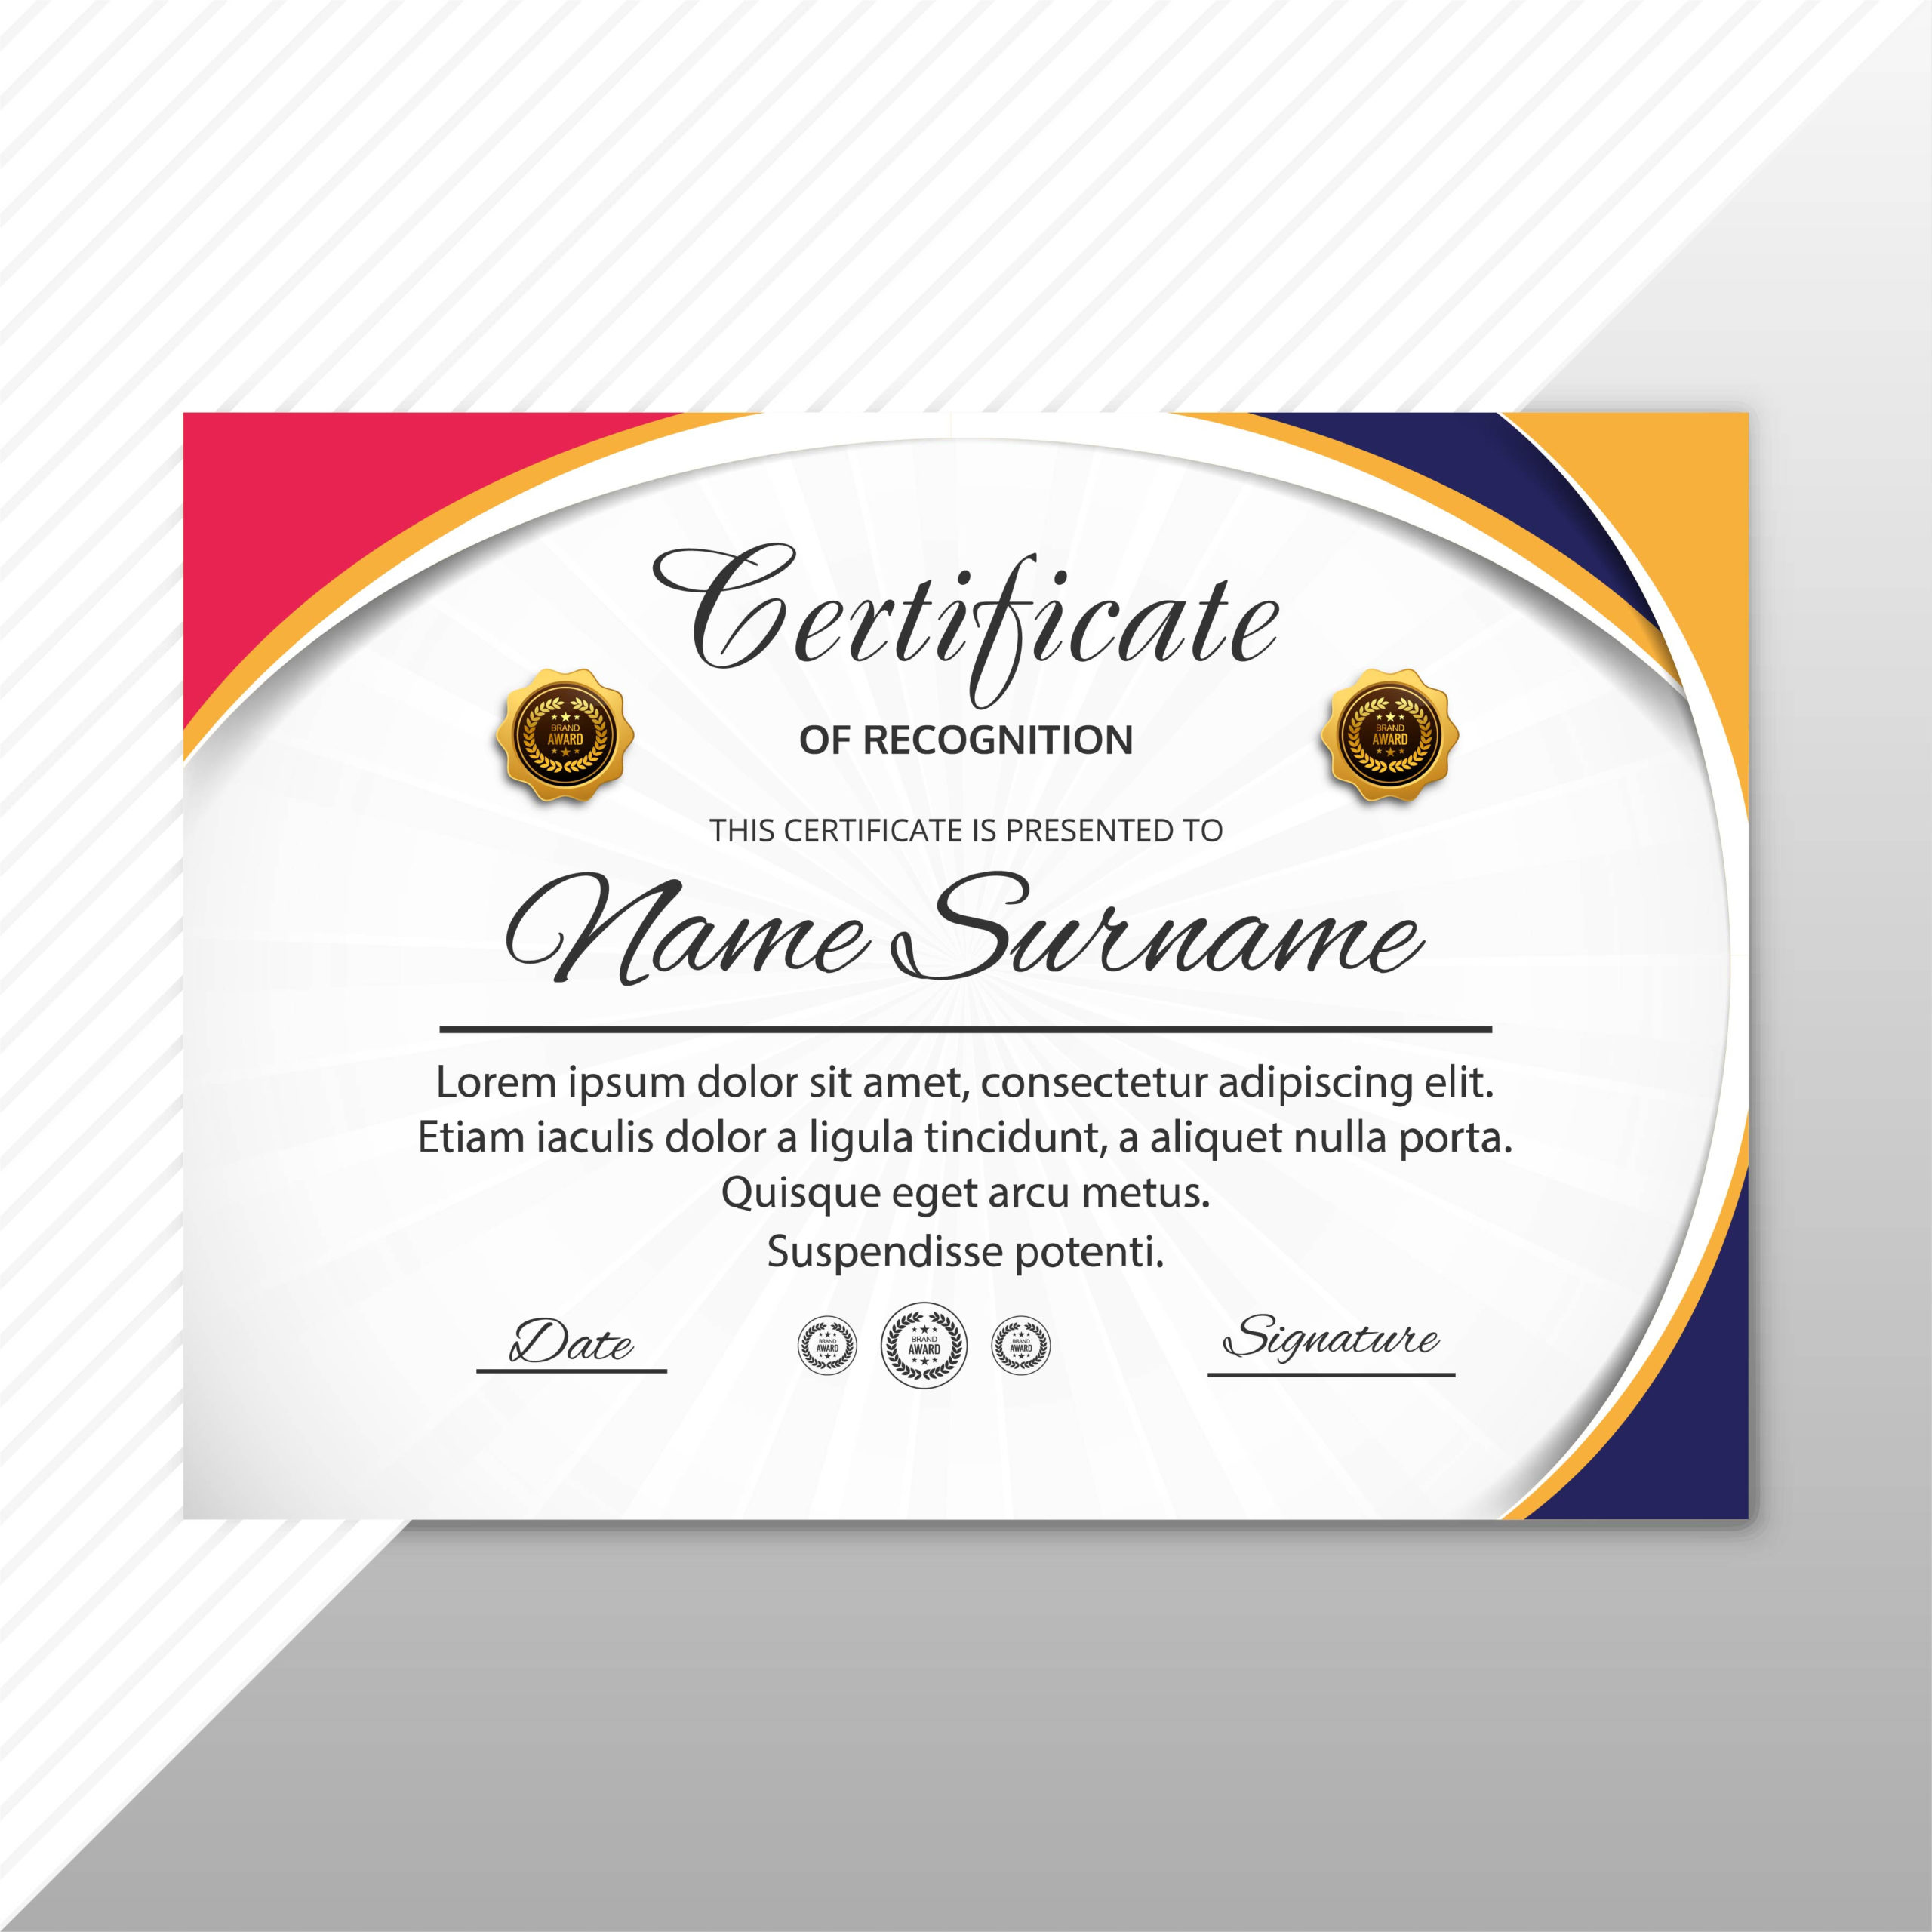 9 Printable Certificate Designs  Certificate Template intended for Printable Editable Stock Certificate Template